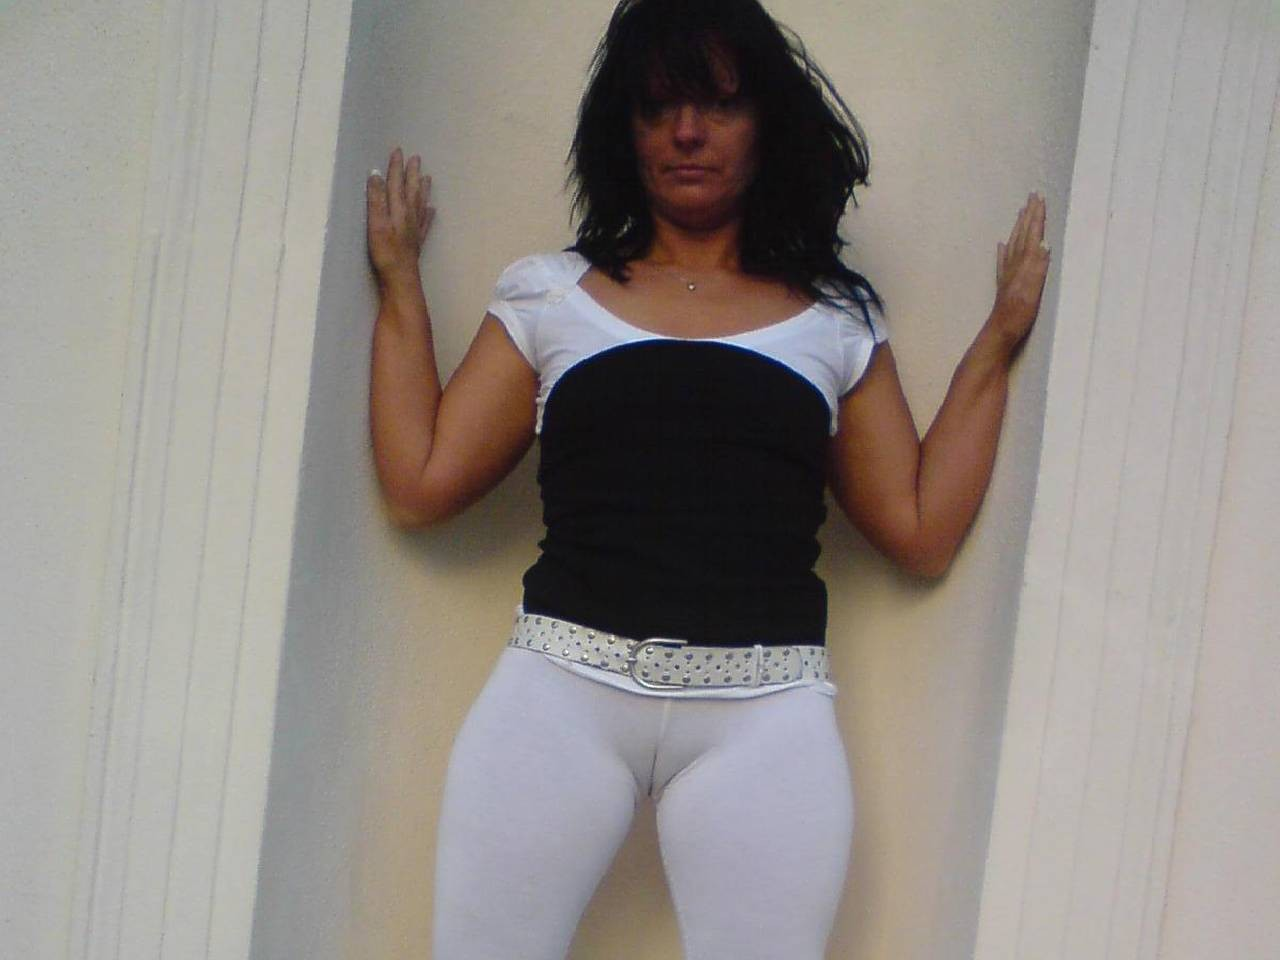 Collection Camel Toe Moms Pictures - Amateur Adult Gallery